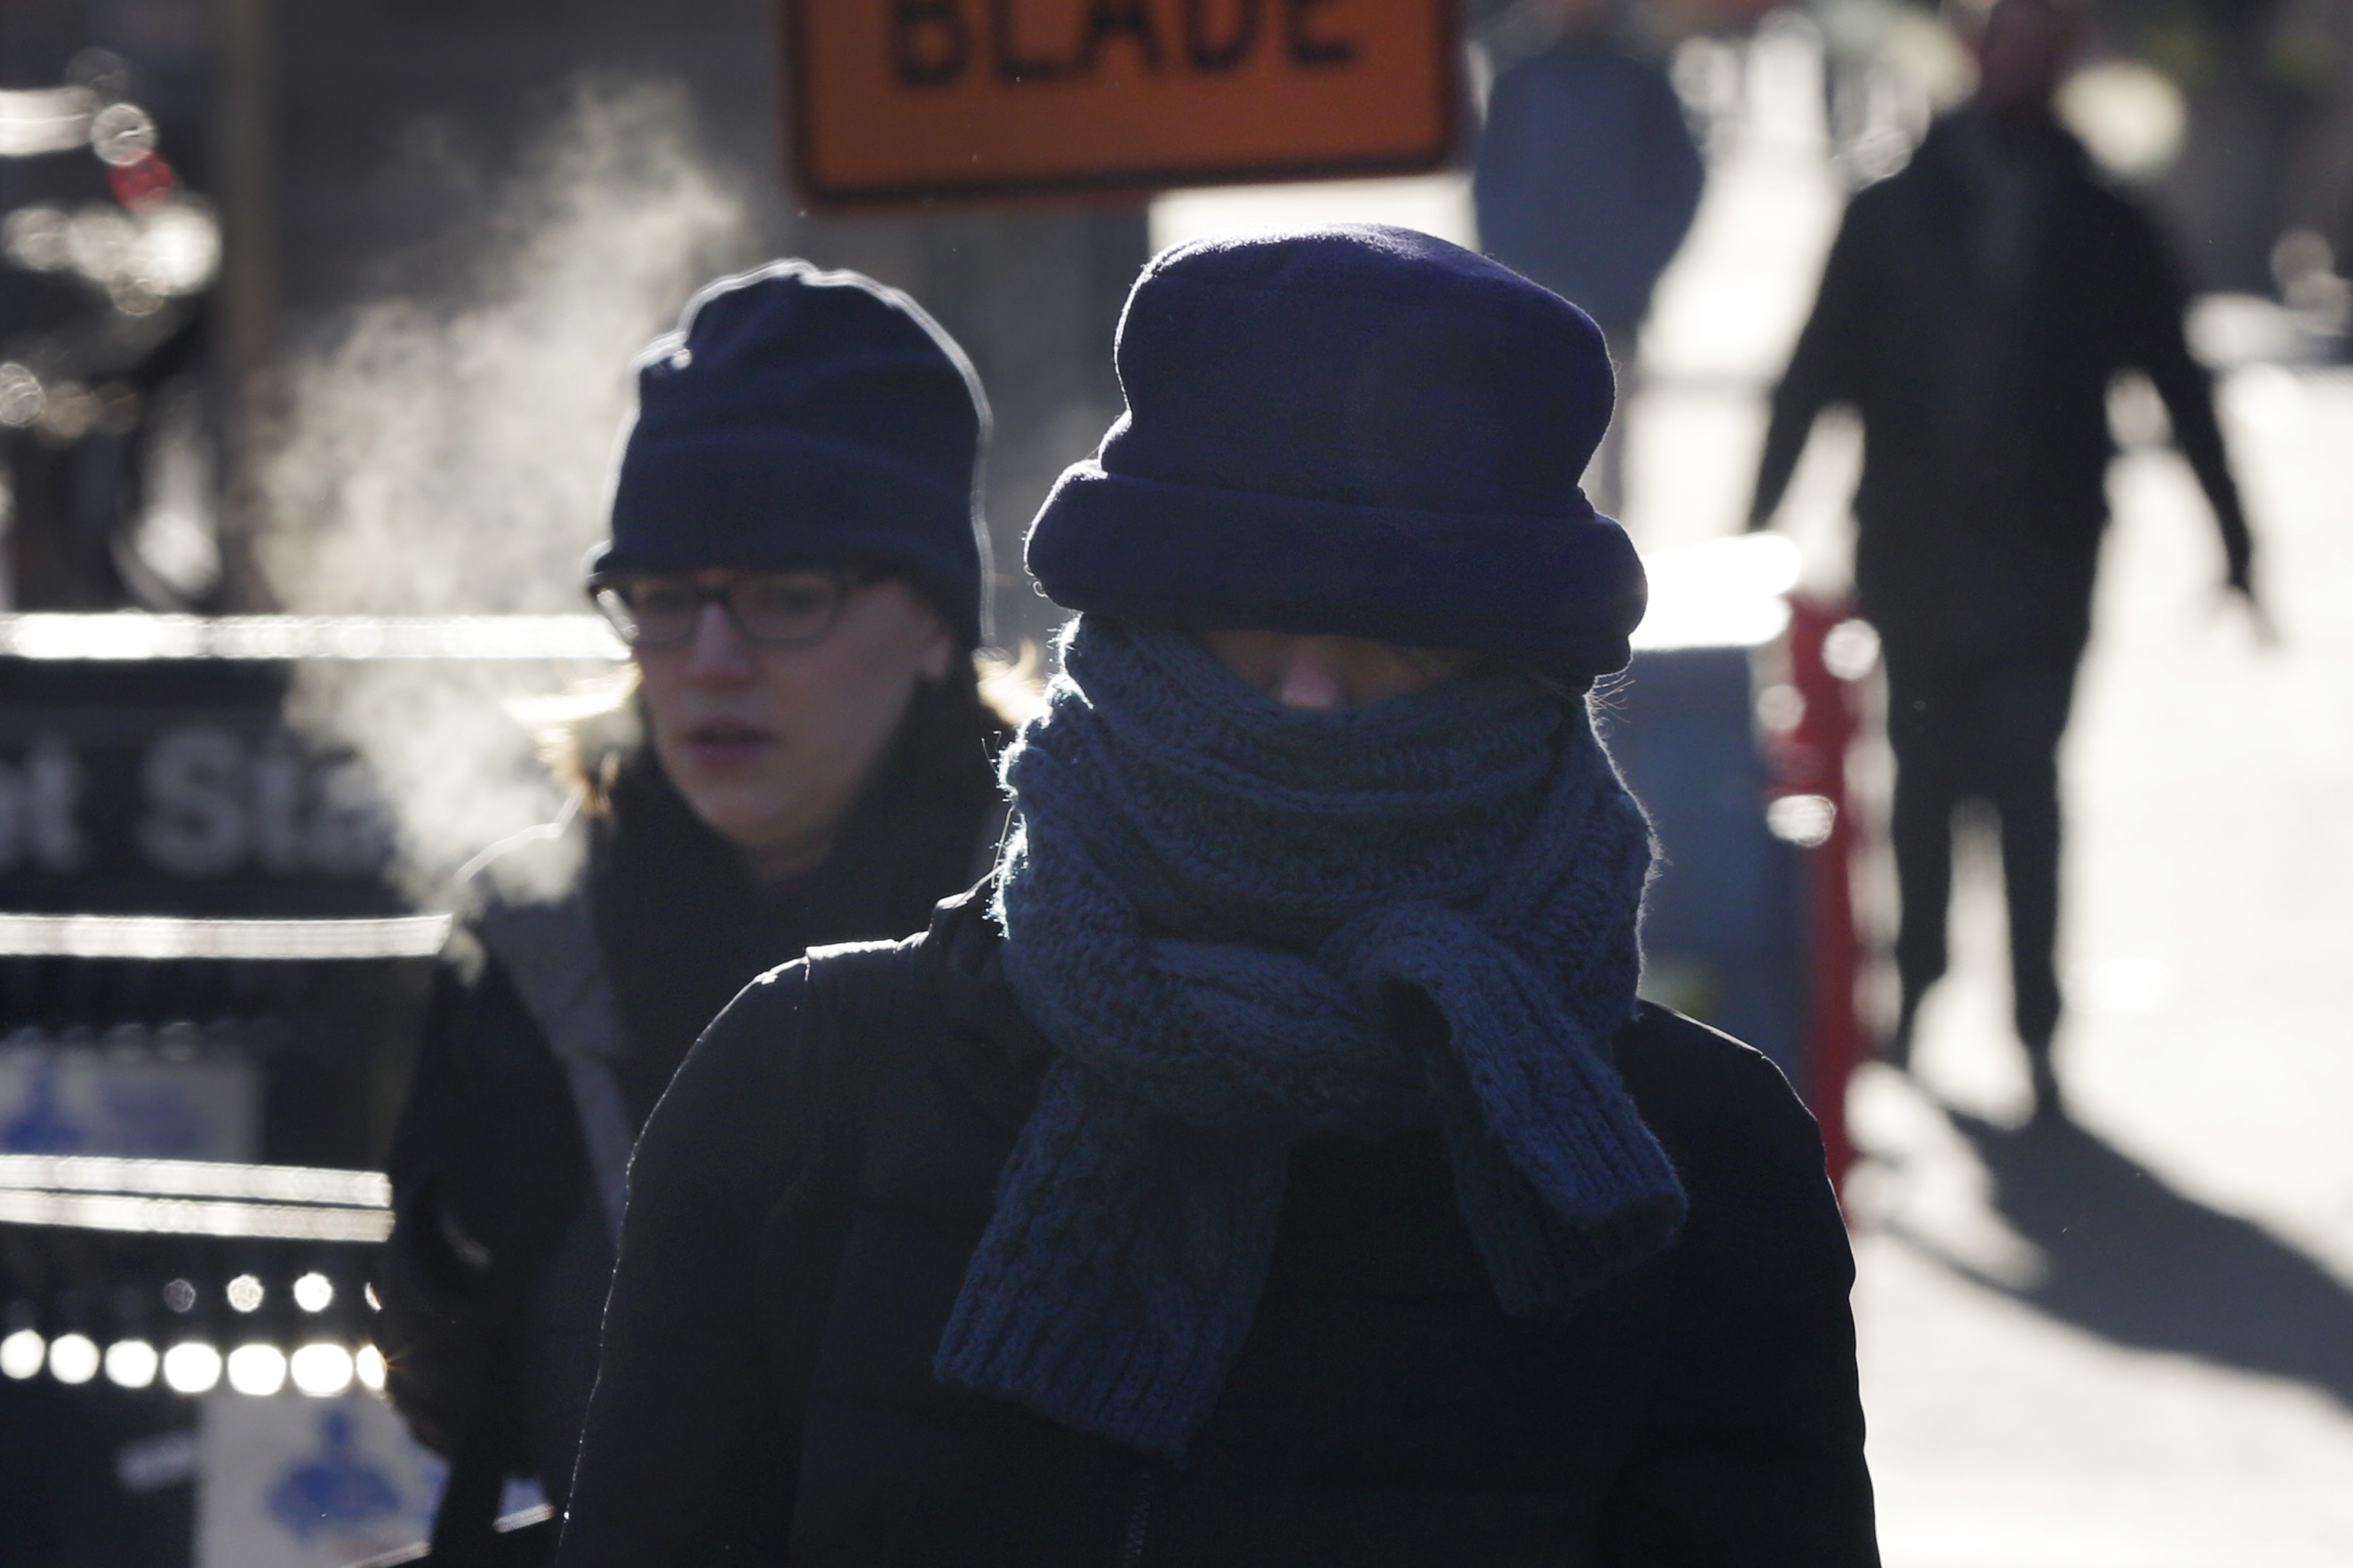 Forecasters: Monday will be coldest day of winter so far